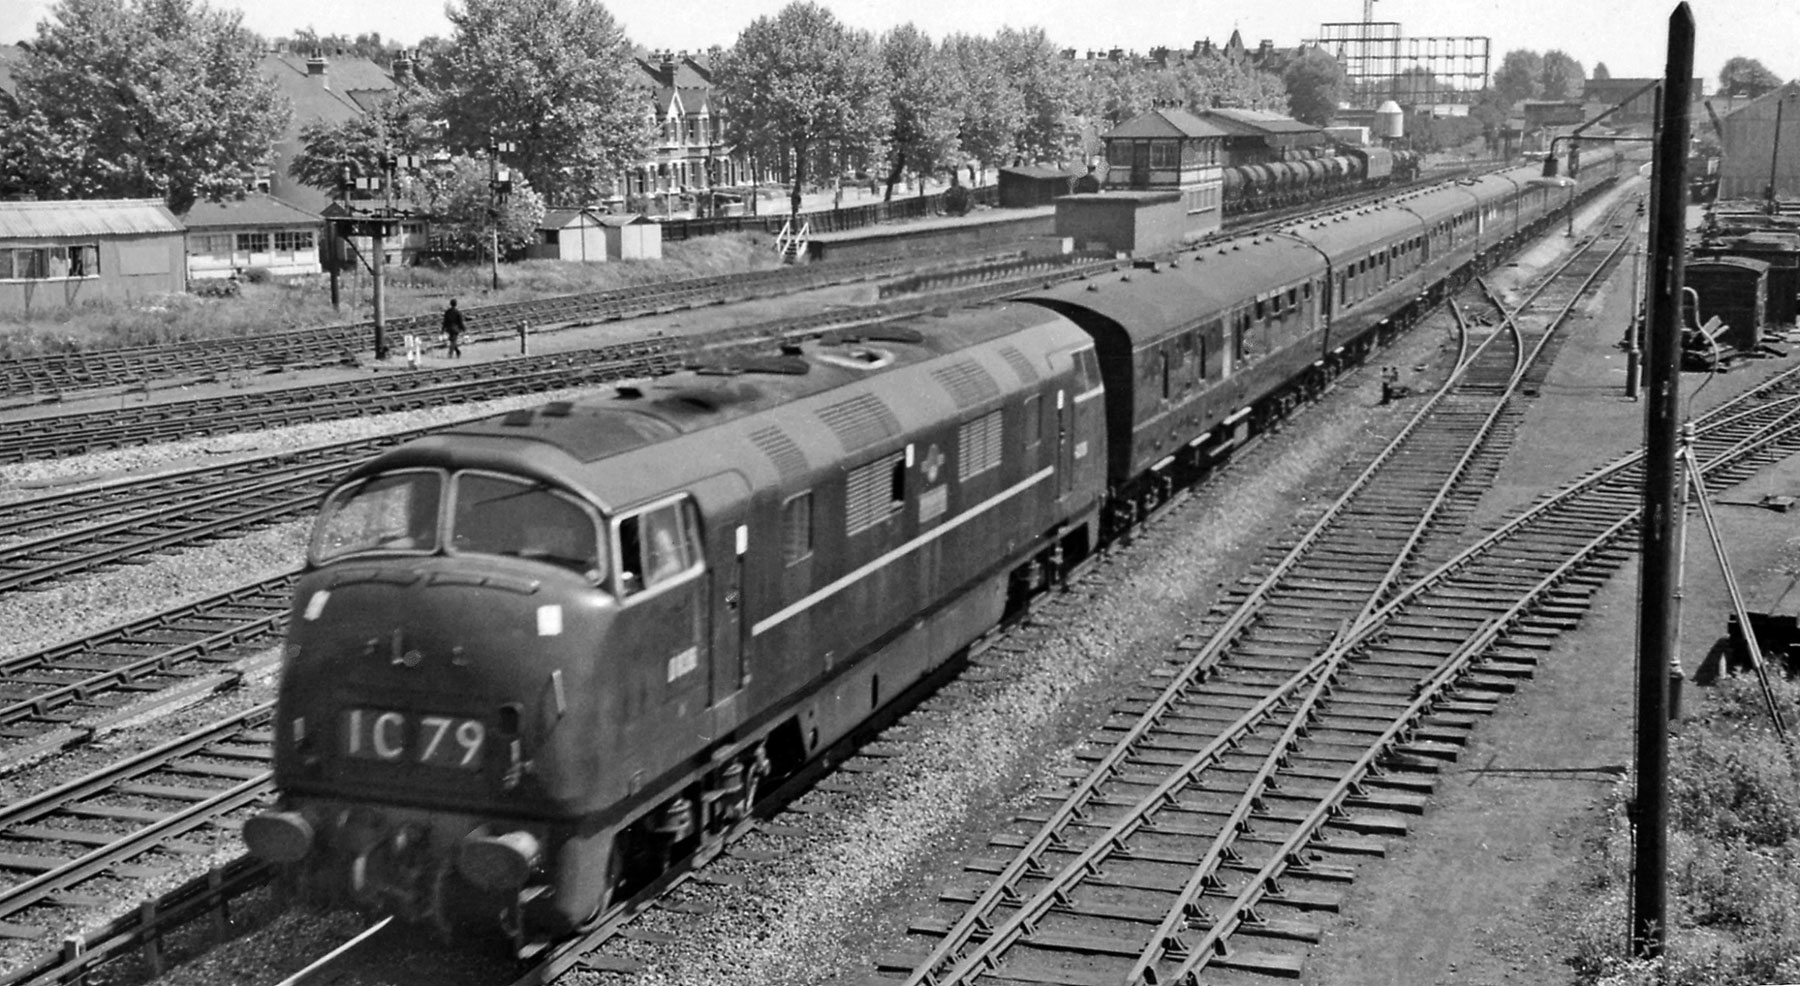 TOPS - Cold War To Coal Trains - West Ealing Railway